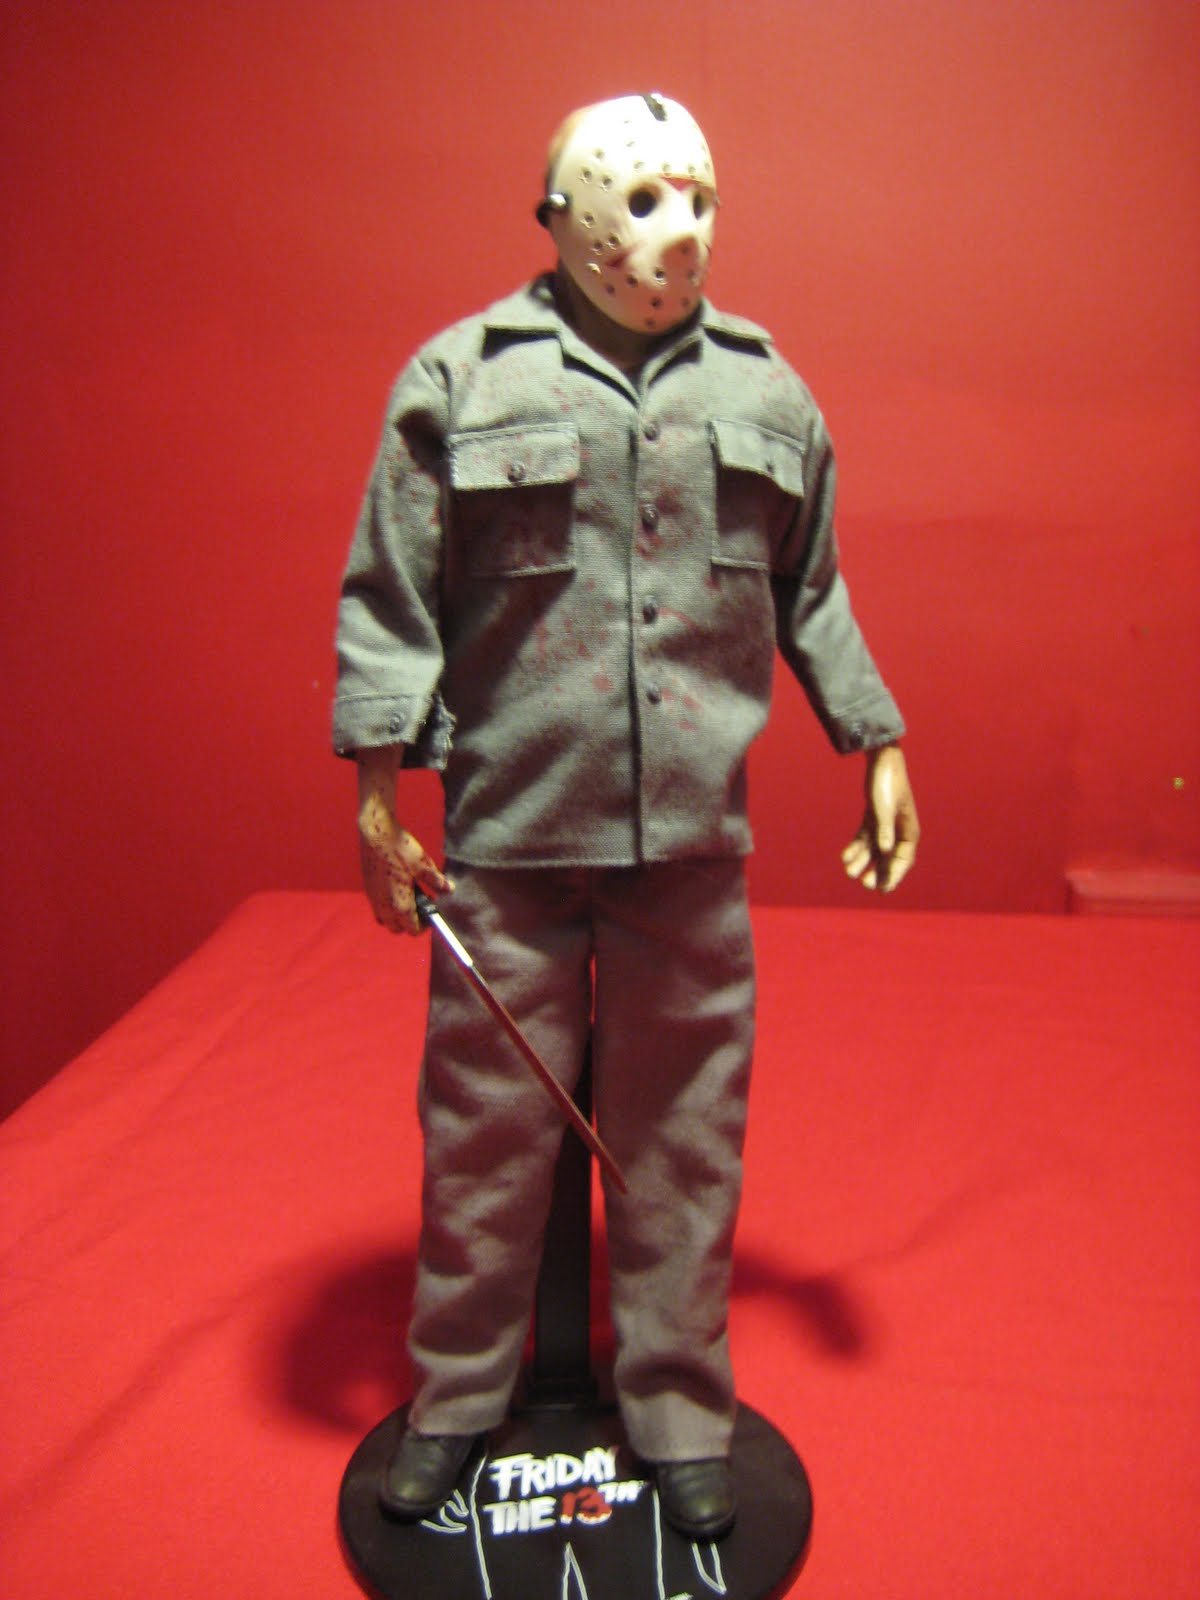 Jason Toys For Boys : Tales from the toybox sideshow toys jason voorhees